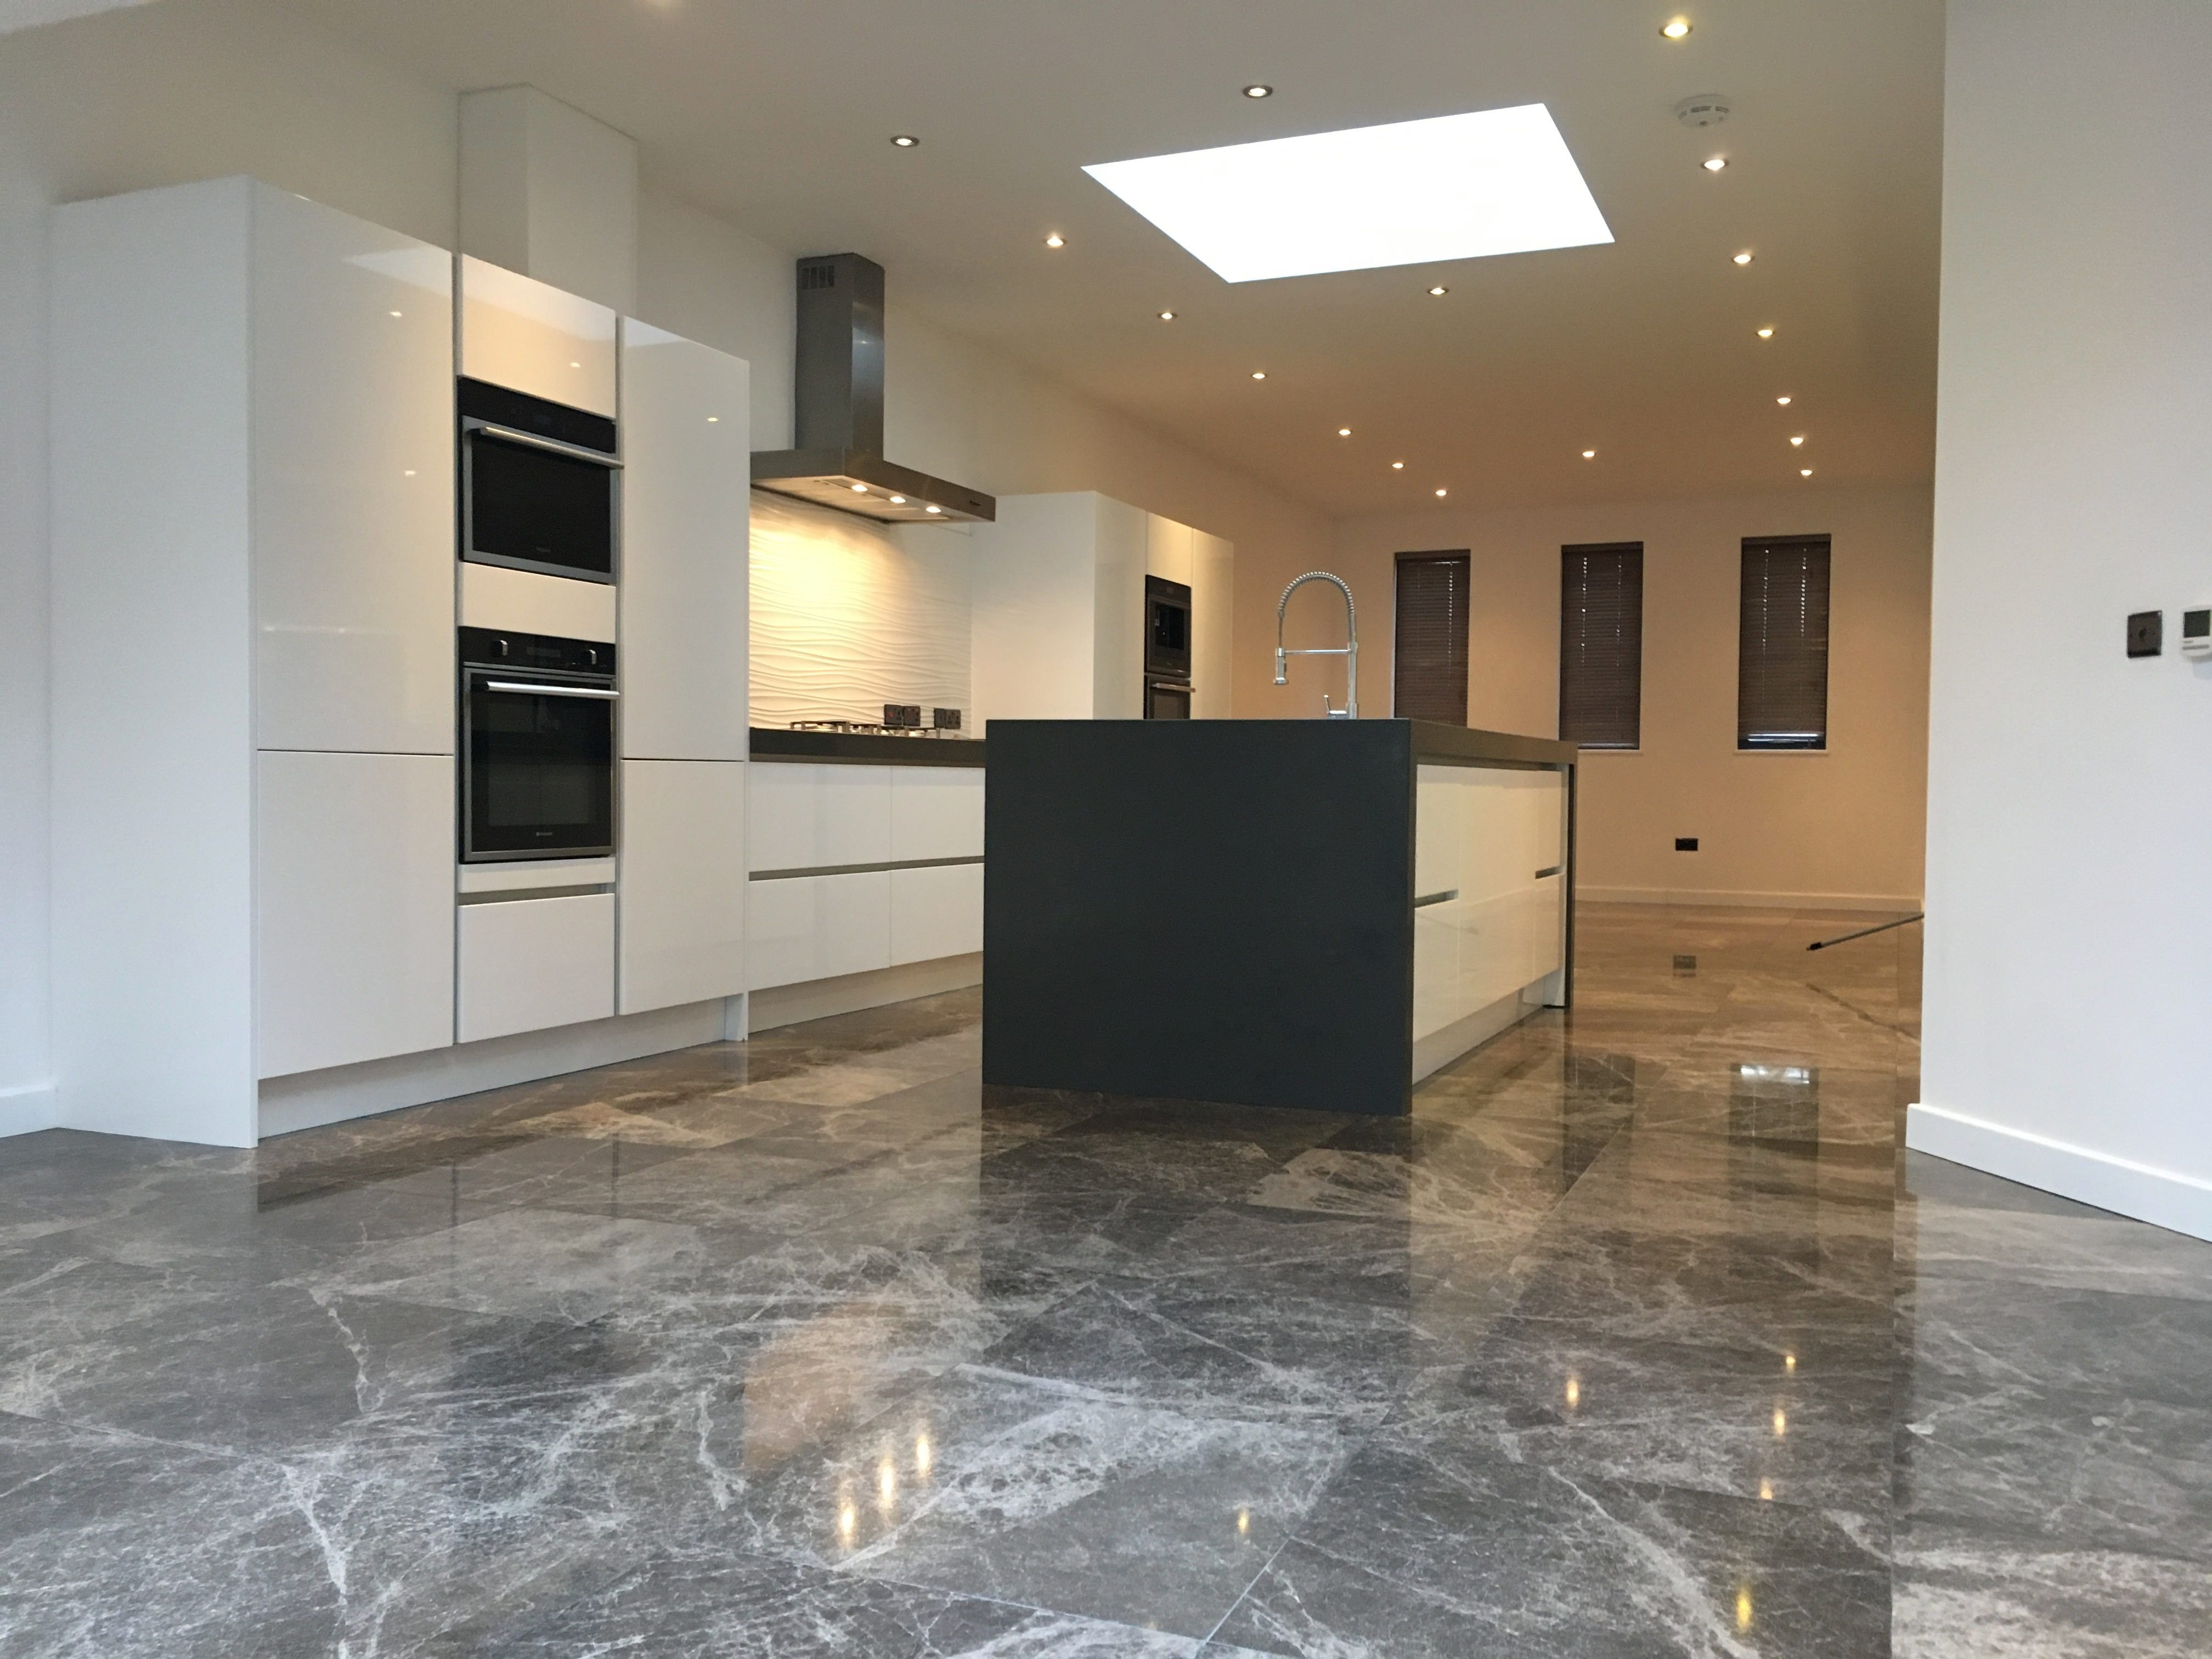 Marble Floor Cleaning Company Restoring Polishing And Sealing Marble